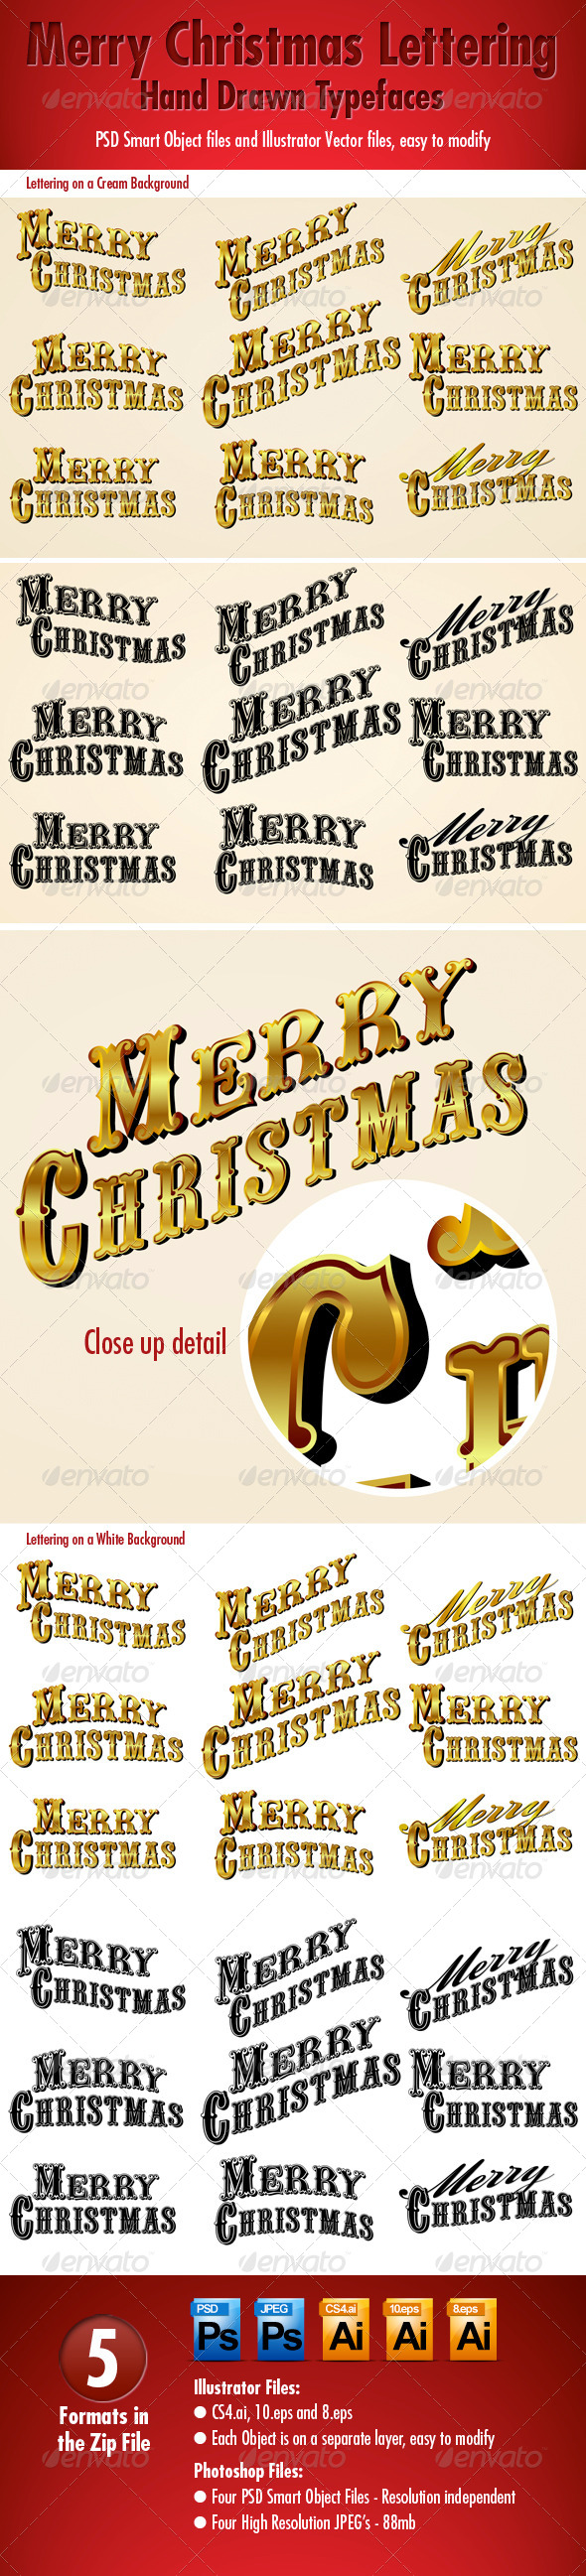 GraphicRiver Merry Christmas Lettering 5622547